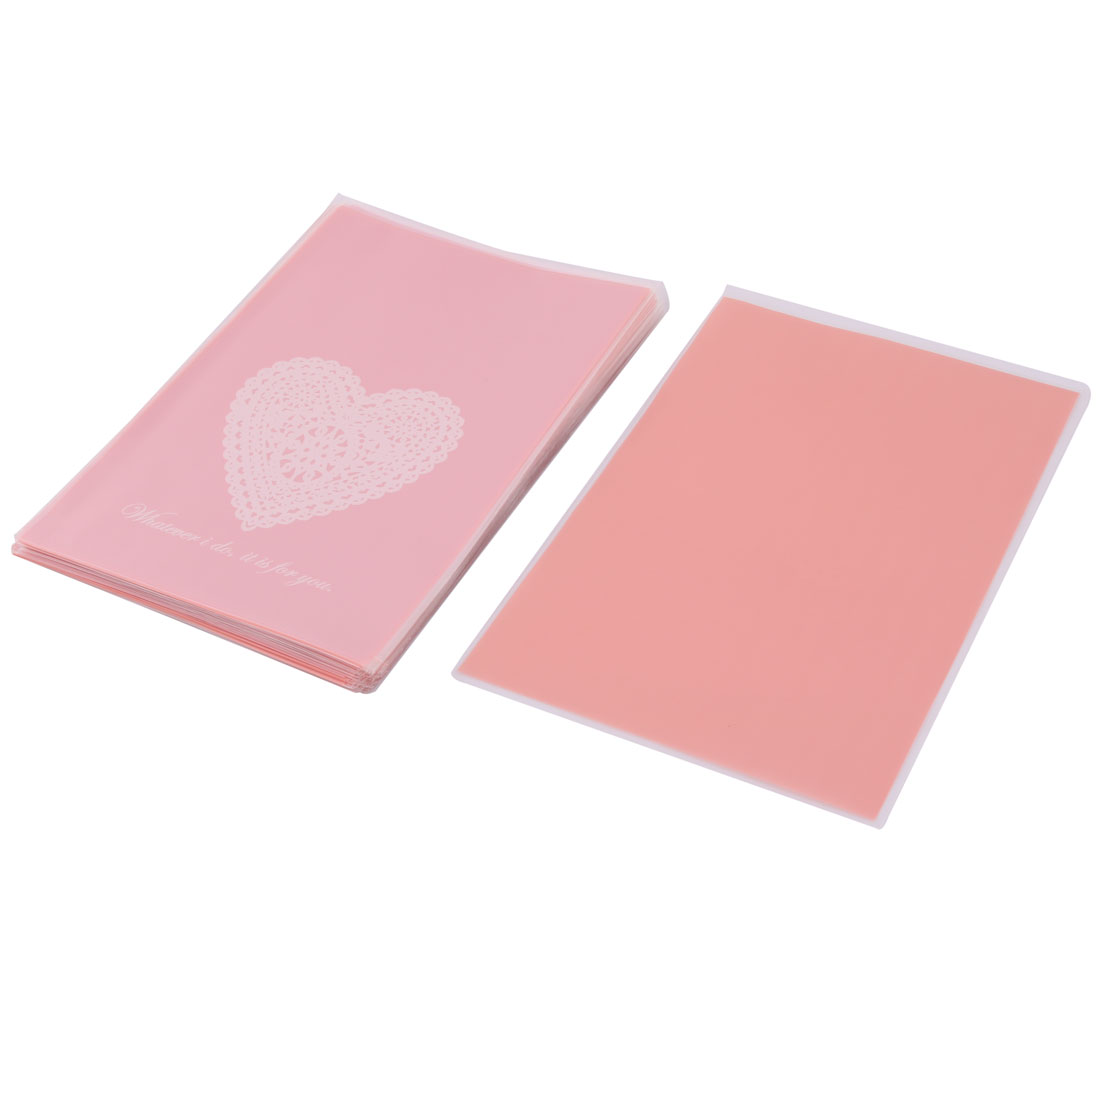 Wedding Heart Pattern Candy Sugar Chocolate DIY Packaging Wrapping Paper 100pcs